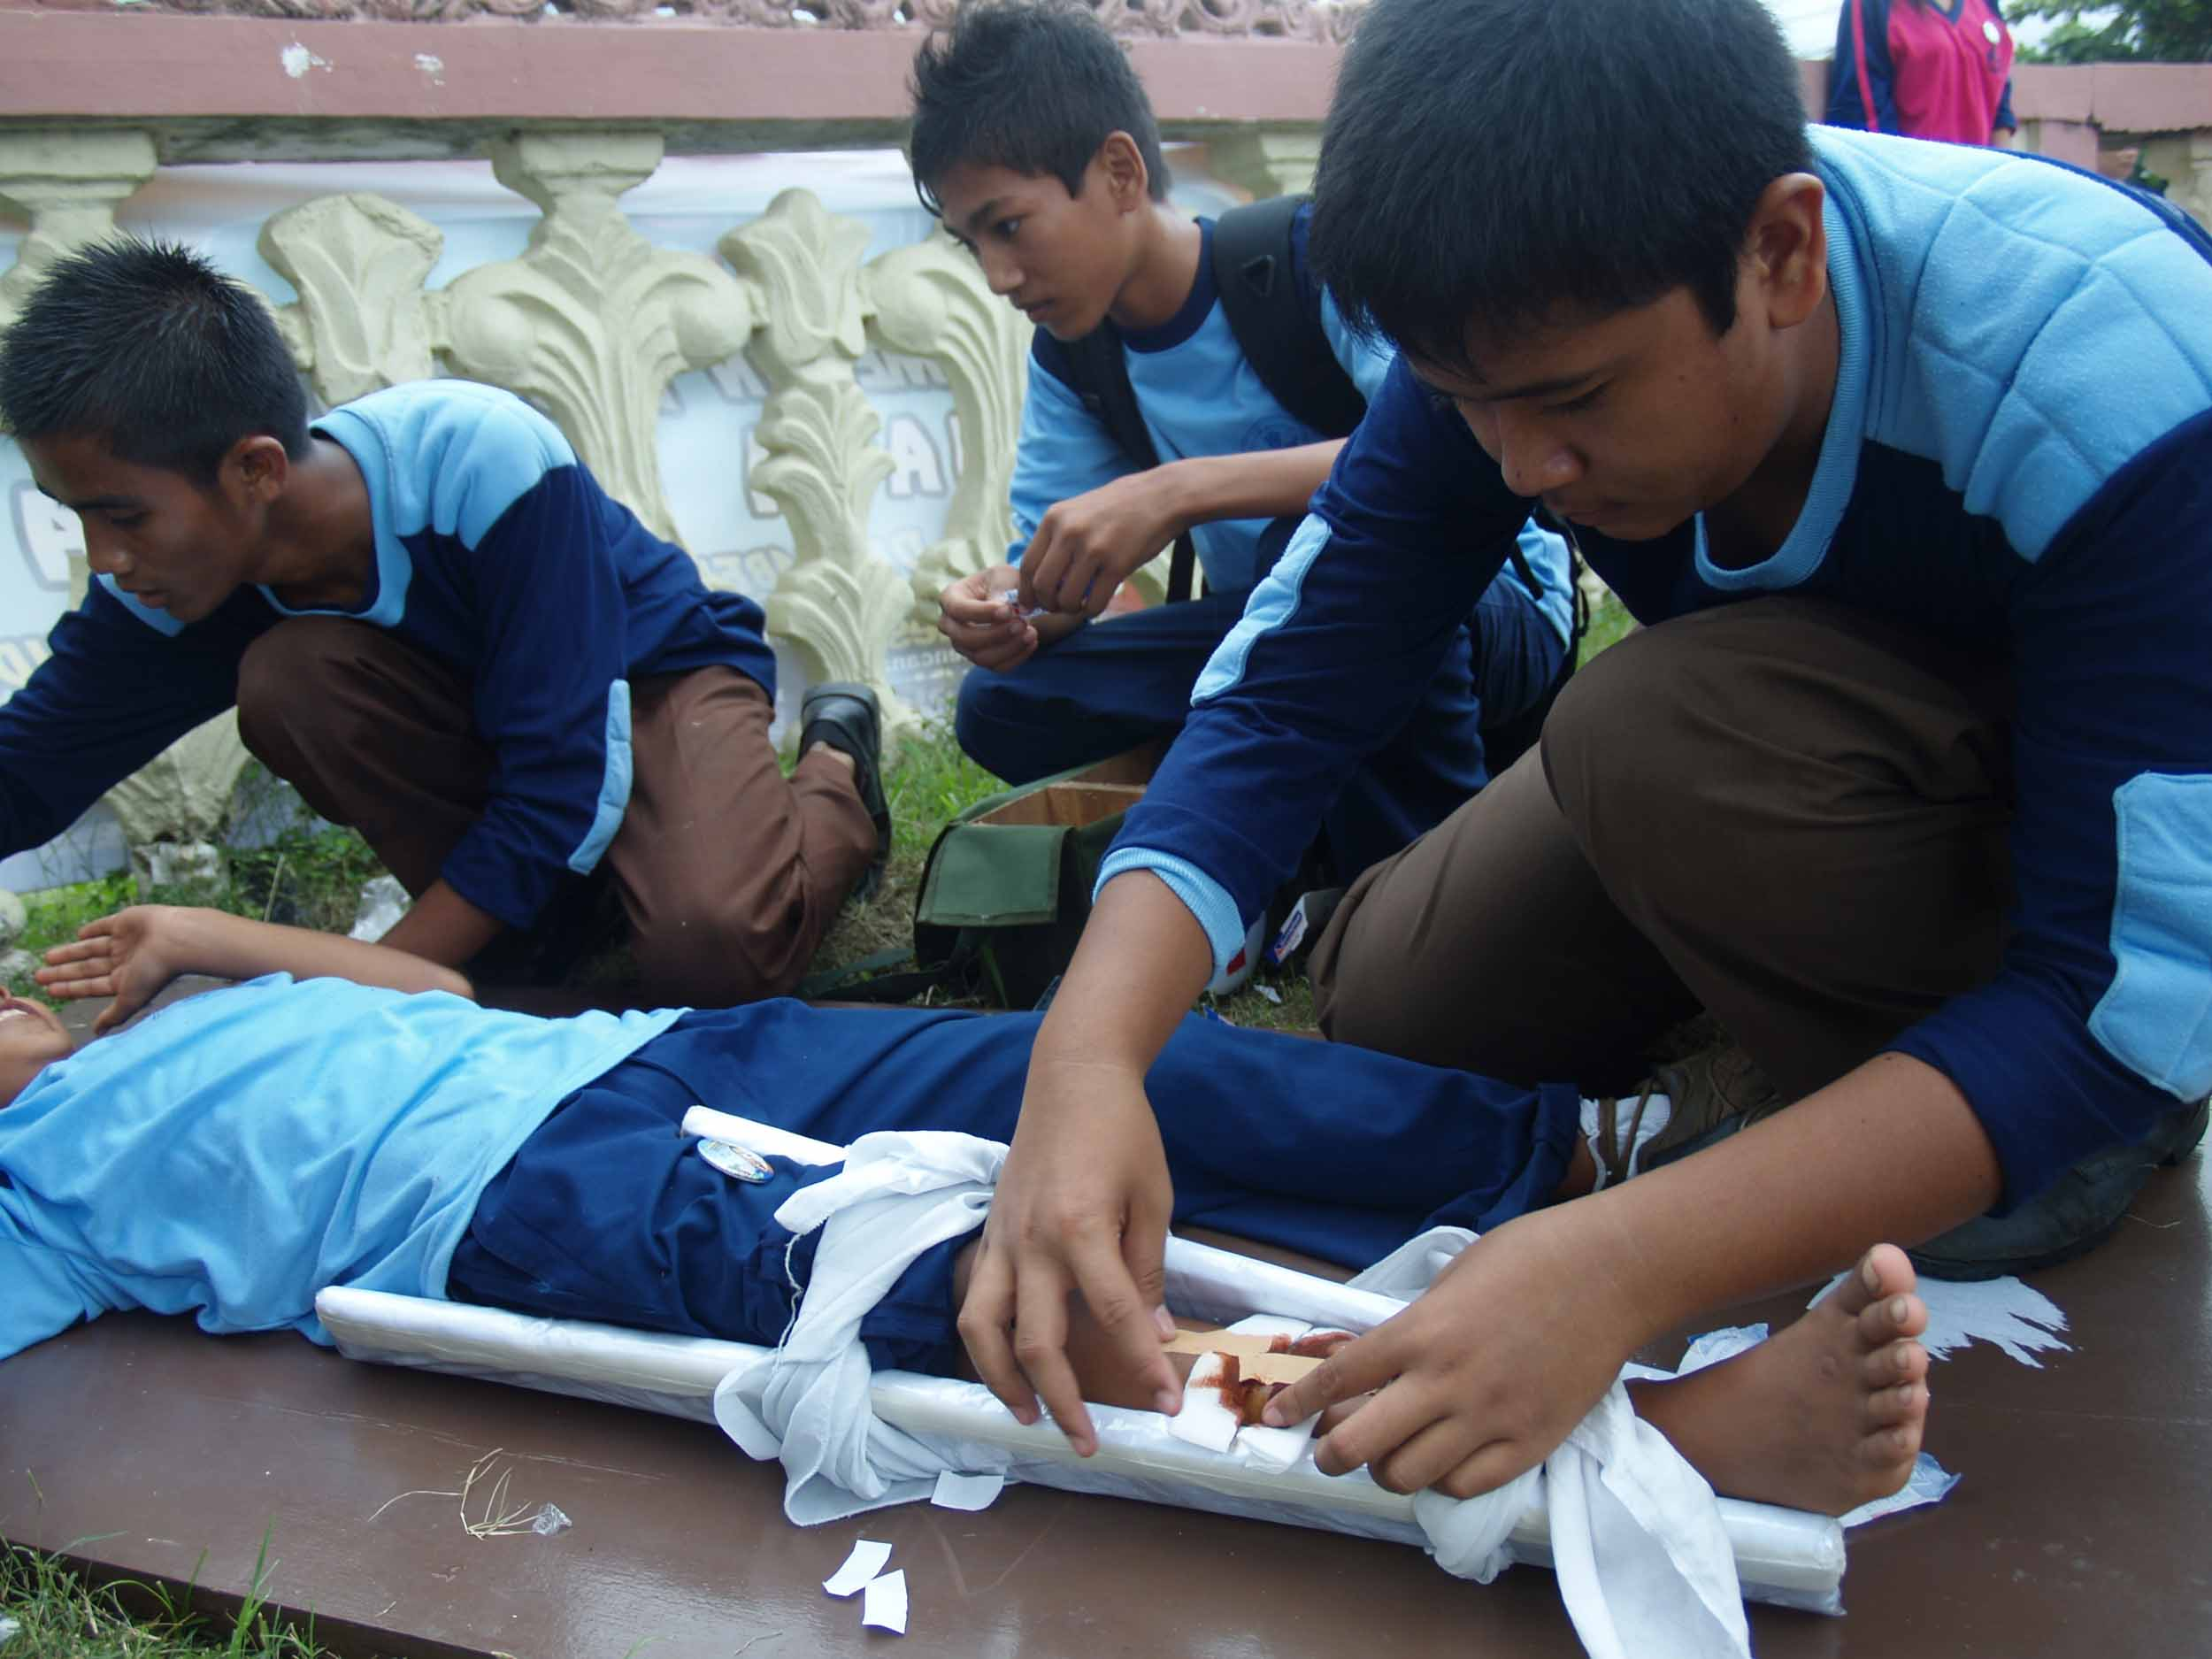 In Padang City, West Sumatra, Indonesia, students practice their first aid skills